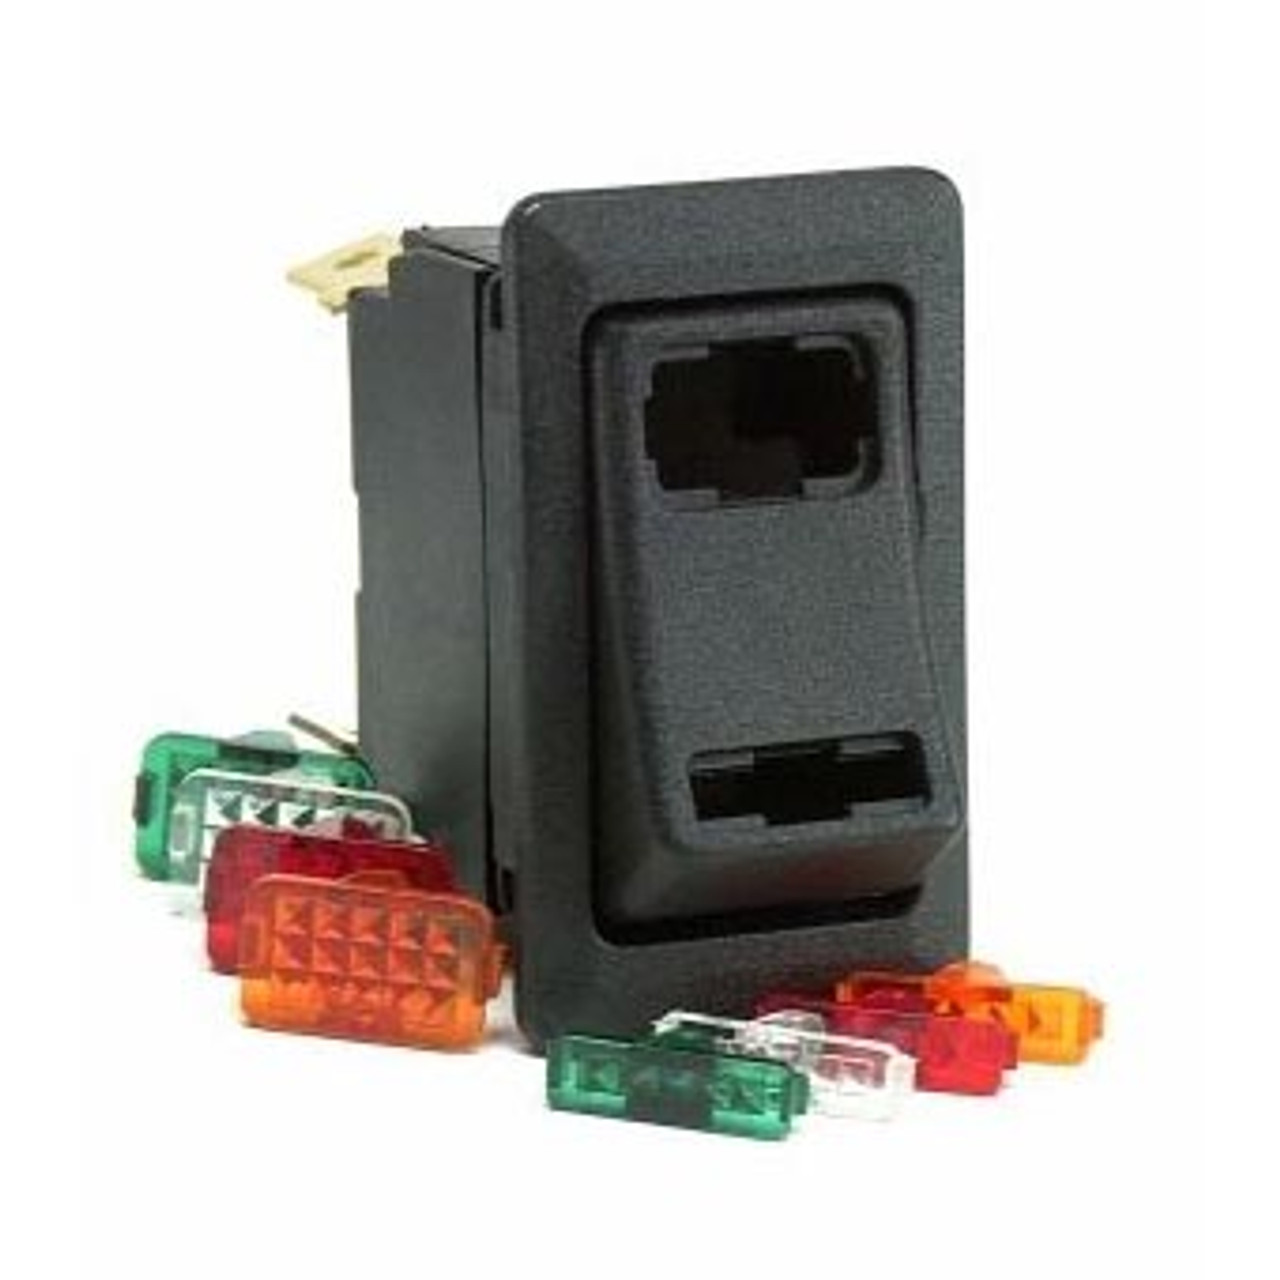 ROCKER SWITCH ON-OFF-ON K SPDT 4 BLADE TERMS. MULTI